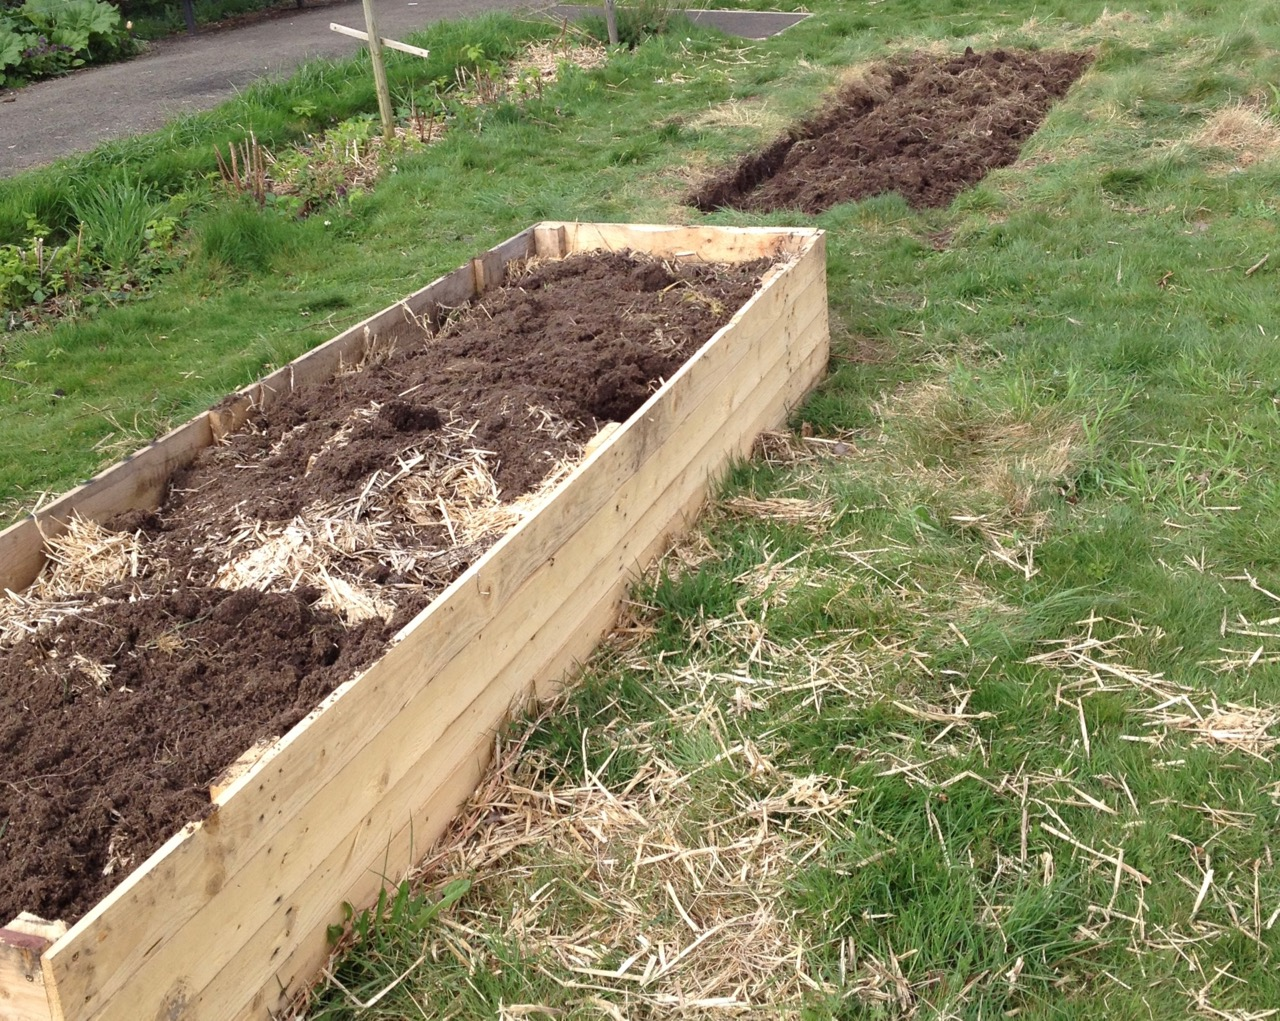 We have started a second raised bed for squash and courgettes - our aim is to make an arch between the two to grow some of them up. All recycled wood from air conditioning deliveries. And a lot of digging from our dream digging team.